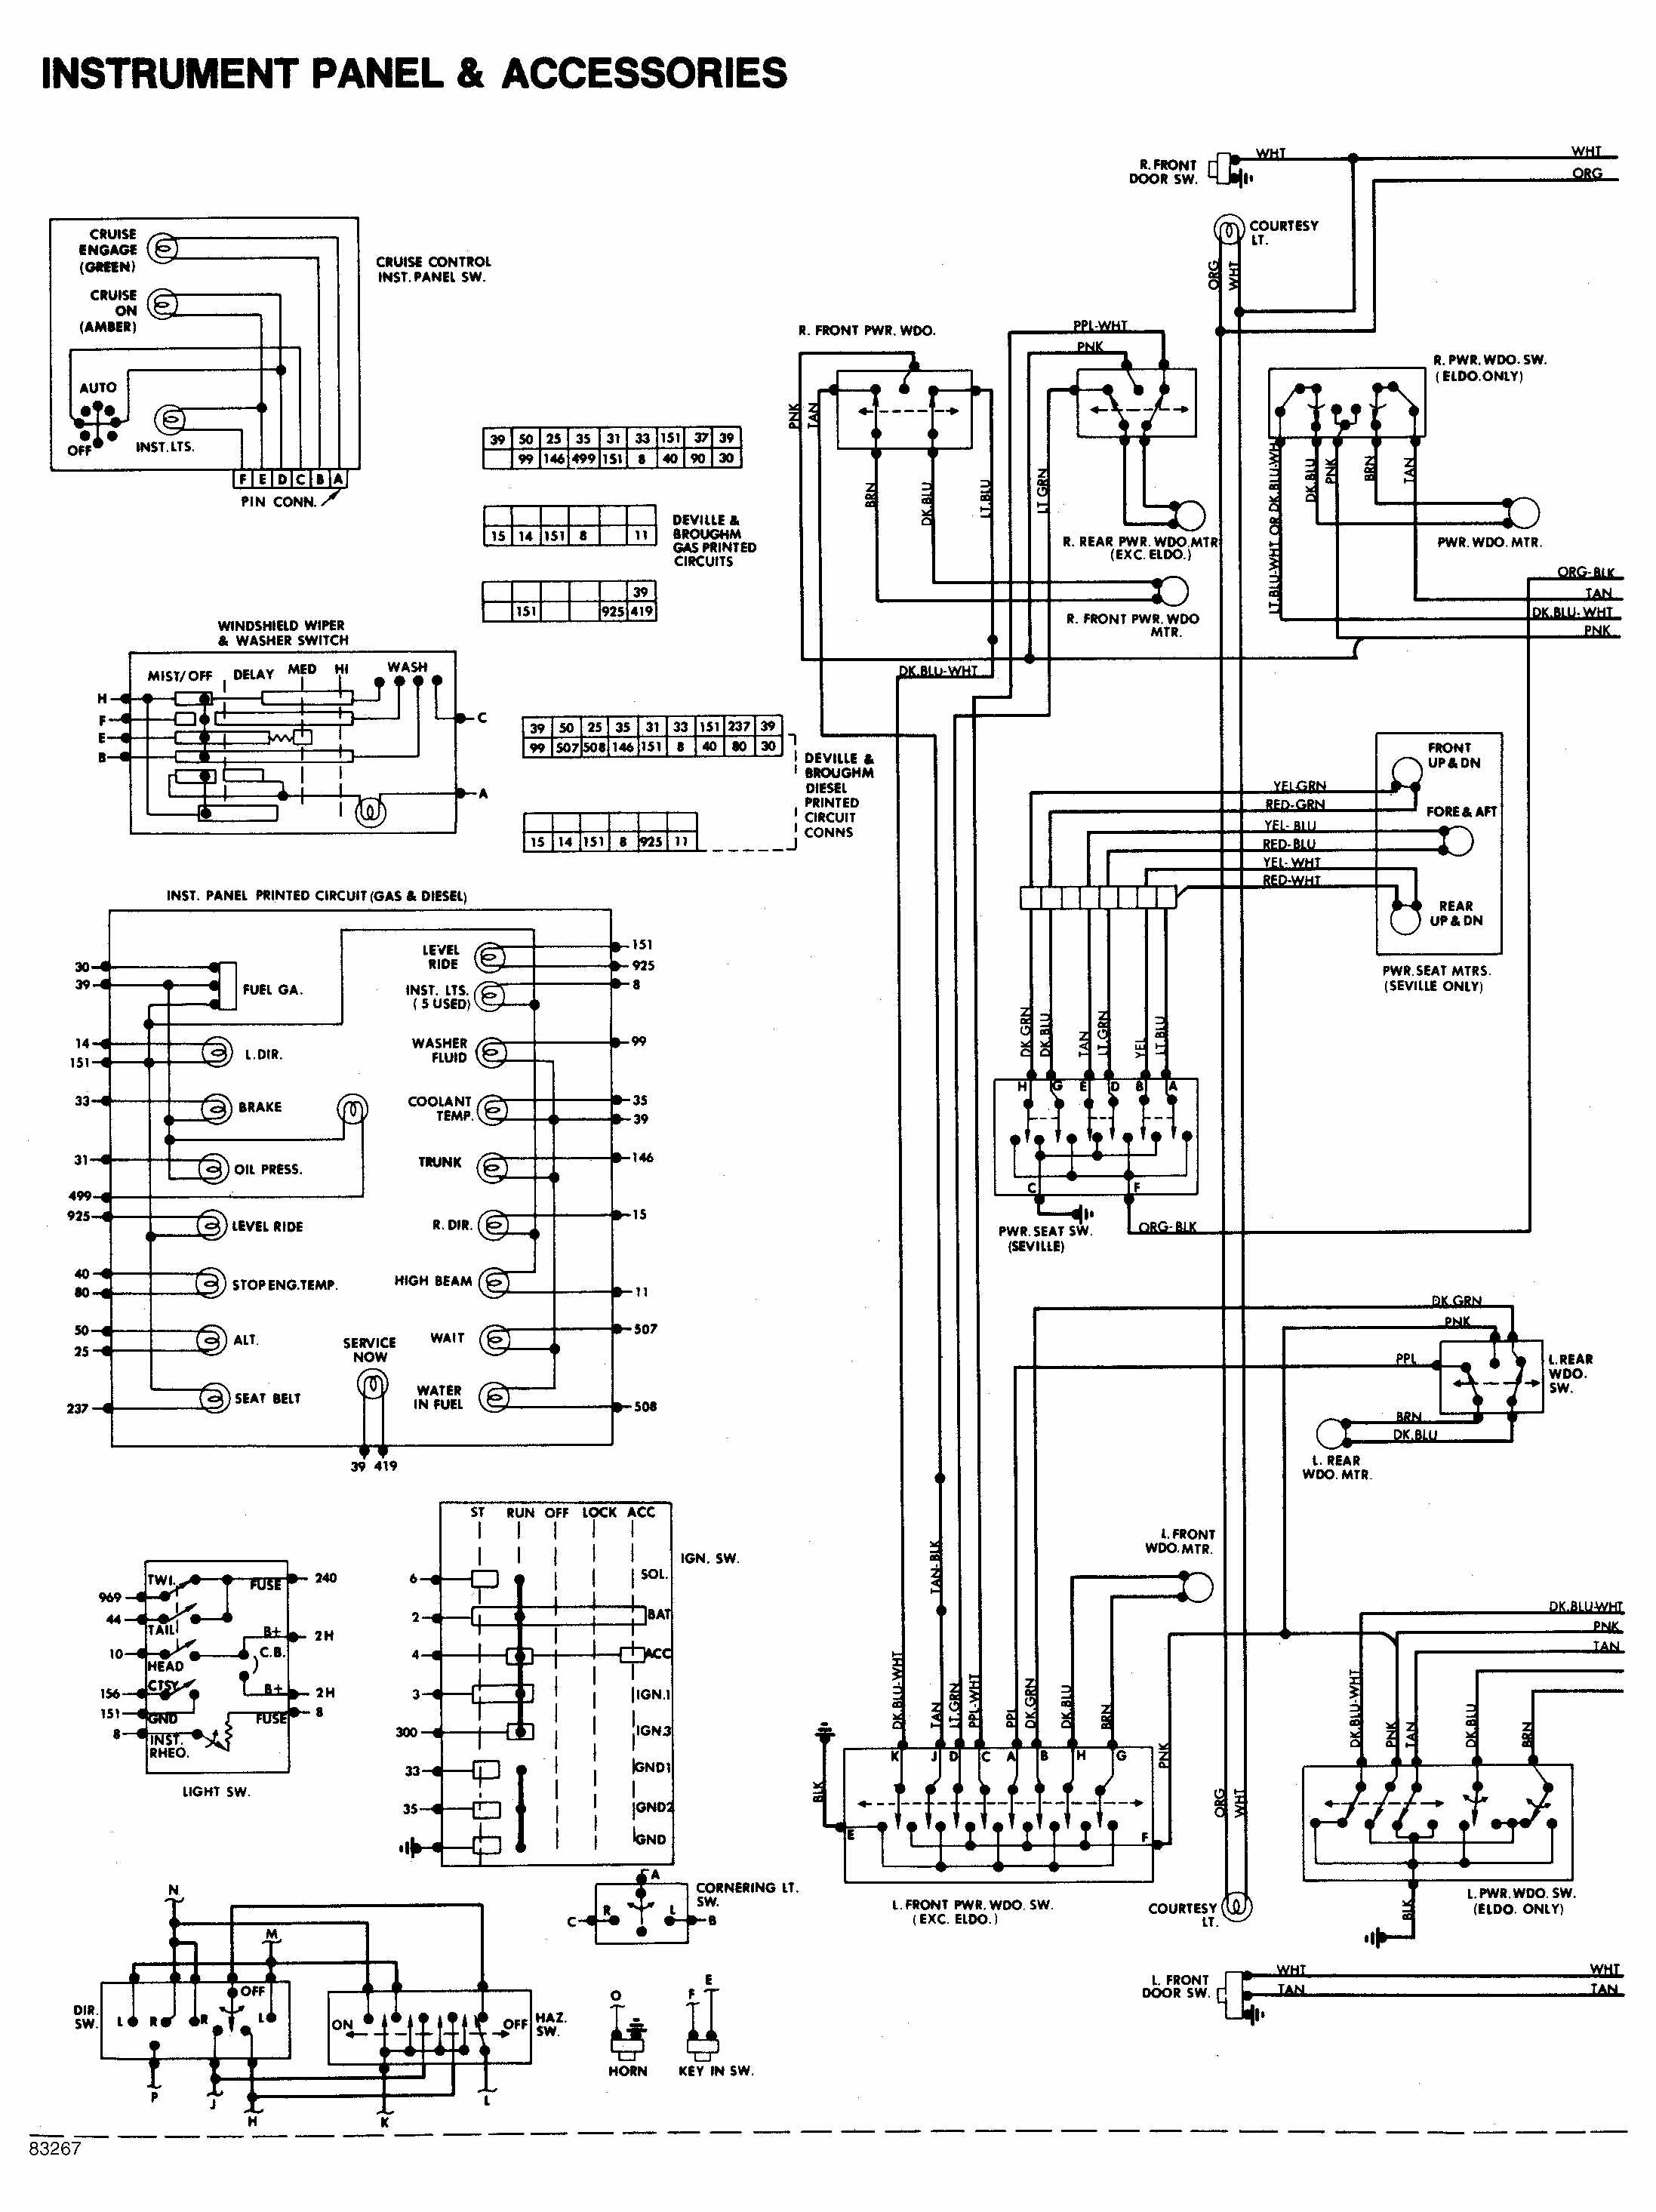 1965 cadillac wiring diagram wiring diagram1968 mustang horn wiring diagram wiring diagramcutlass wire diagram wiring diagram1972 oldsmobile cutlass wiring diagram 10